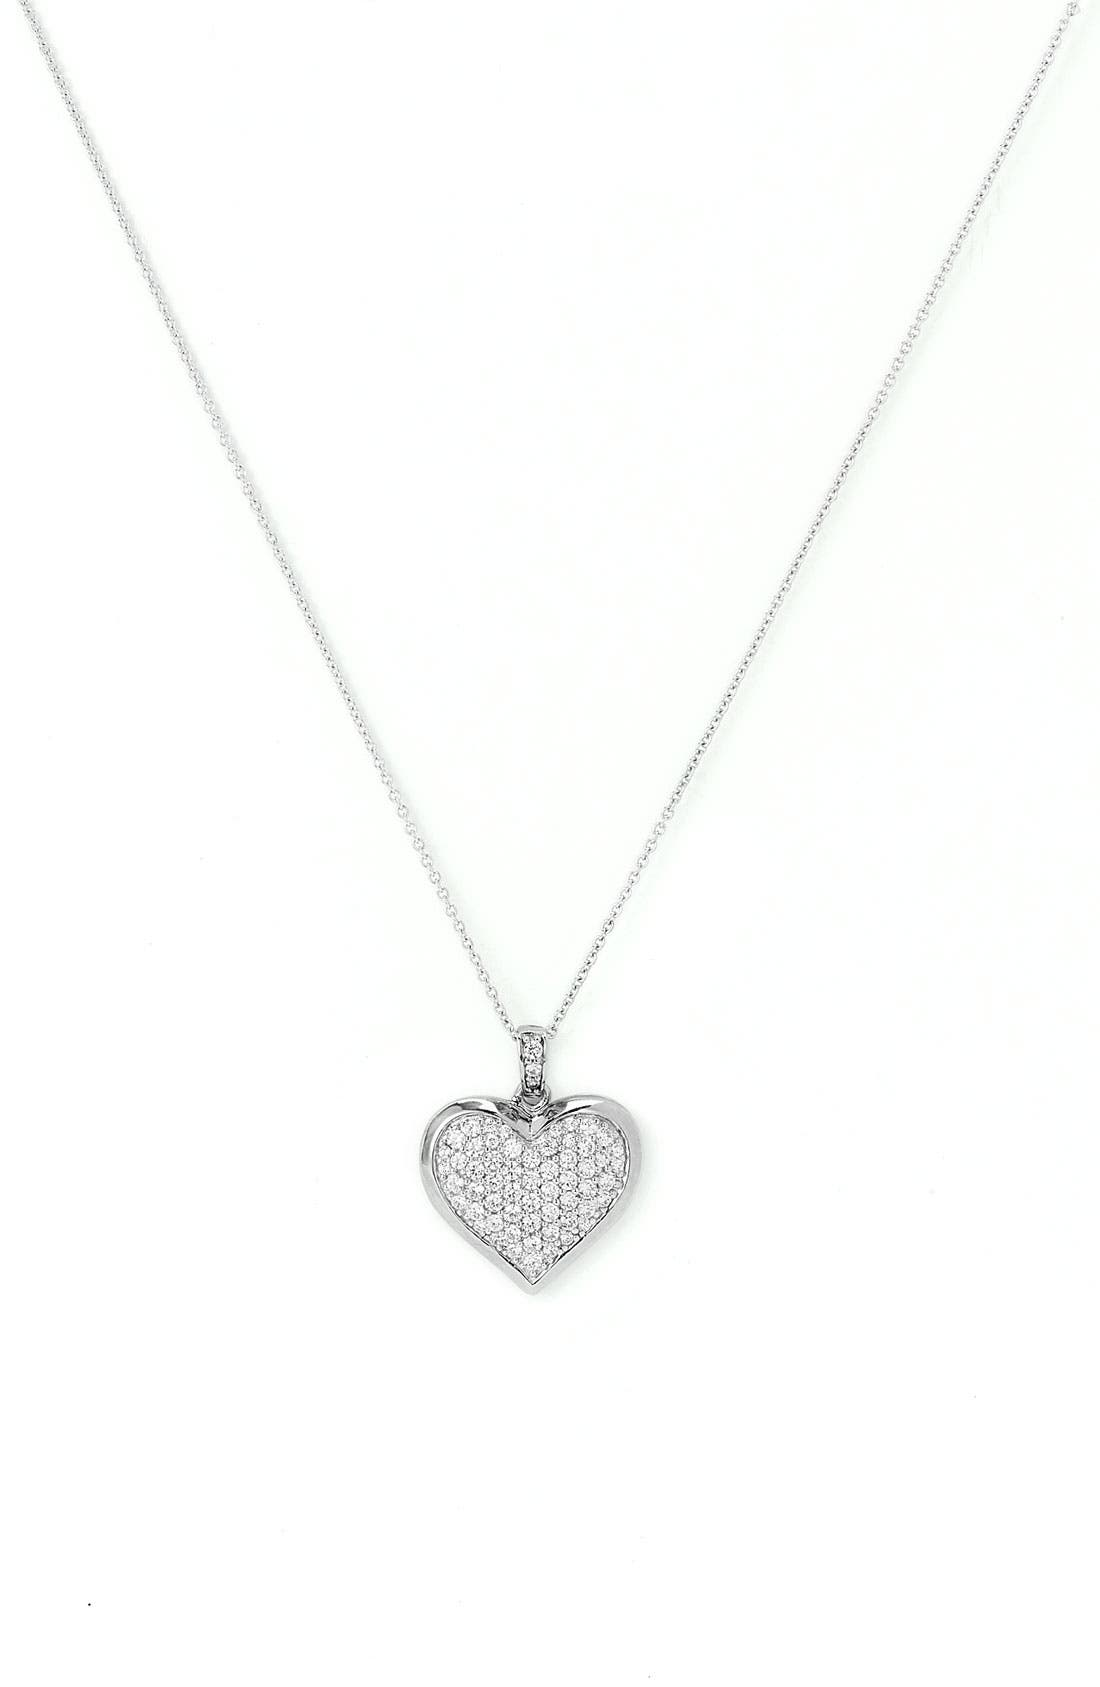 Alternate Image 1 Selected - Nordstrom Cubic Zirconia Locket Necklace